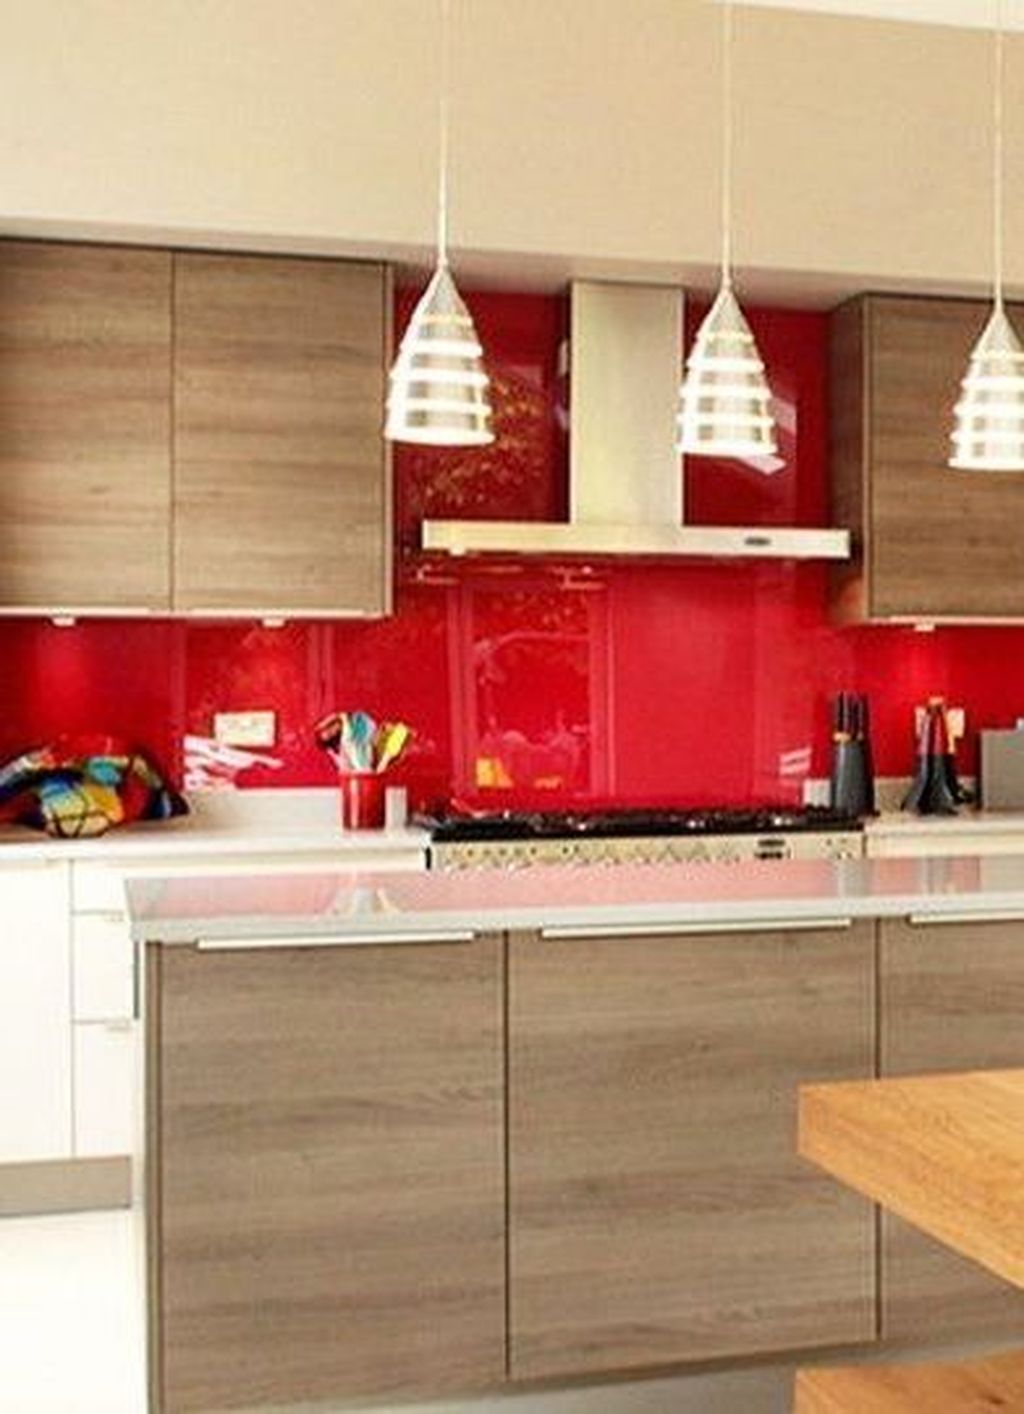 Adorable Rainbow Colorful Kitchens Design Ideas To Looks More Awesome 36